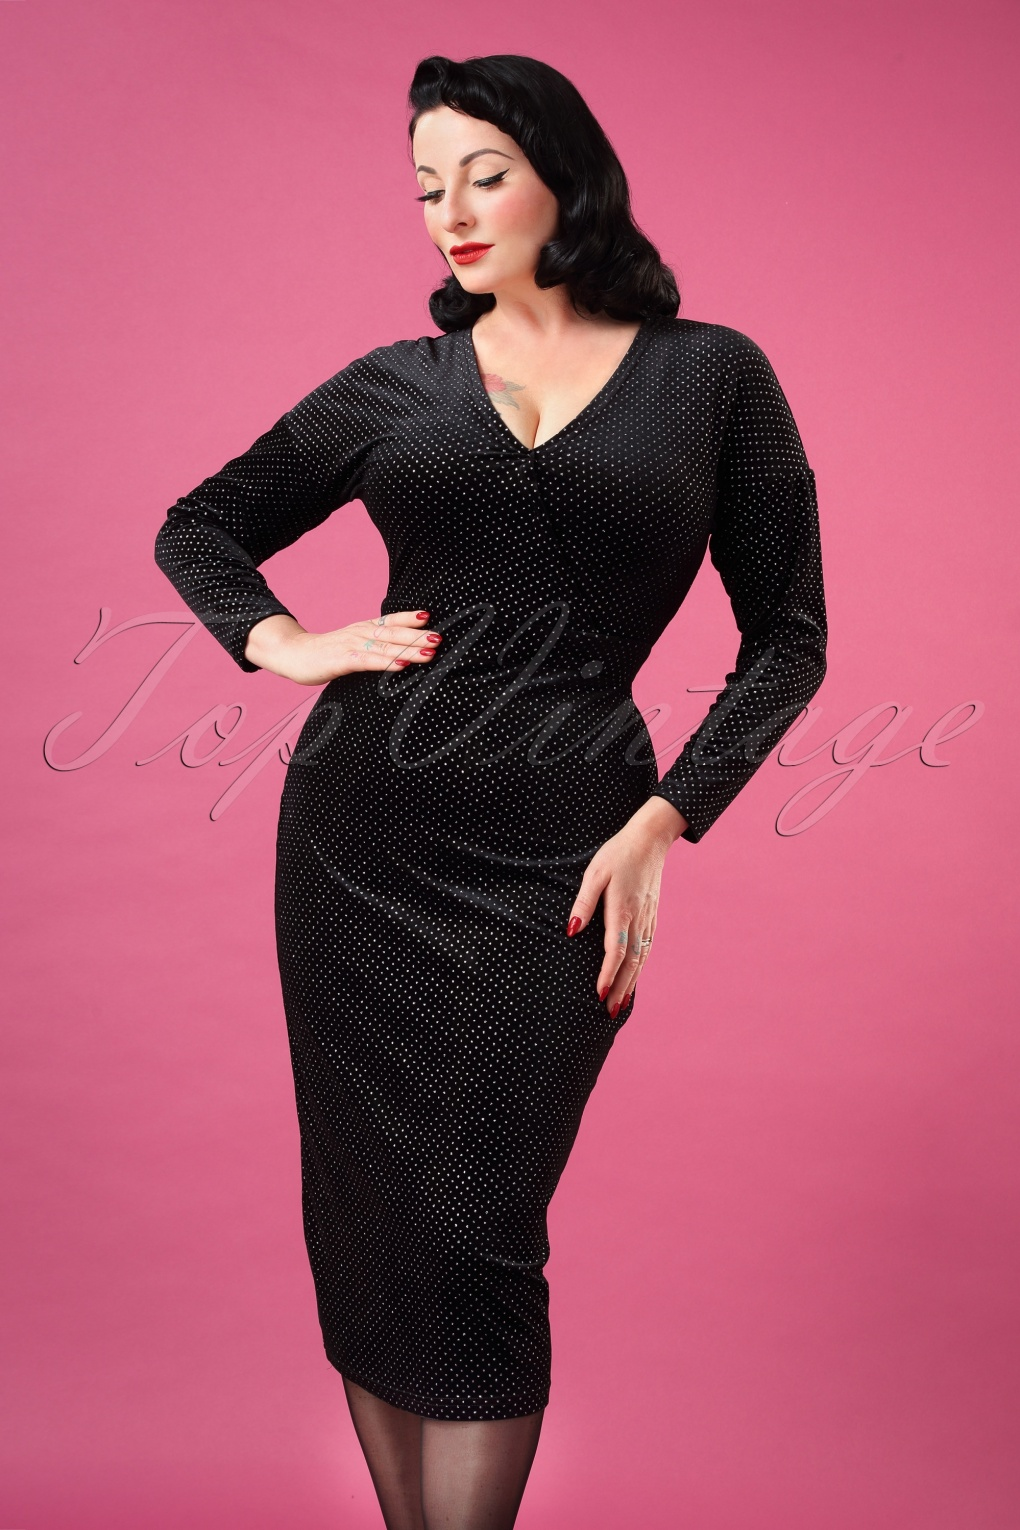 500 Vintage Style Dresses for Sale | Vintage Inspired Dresses 50s Metal Polka Velvet Pencil Dress in Black £27.35 AT vintagedancer.com